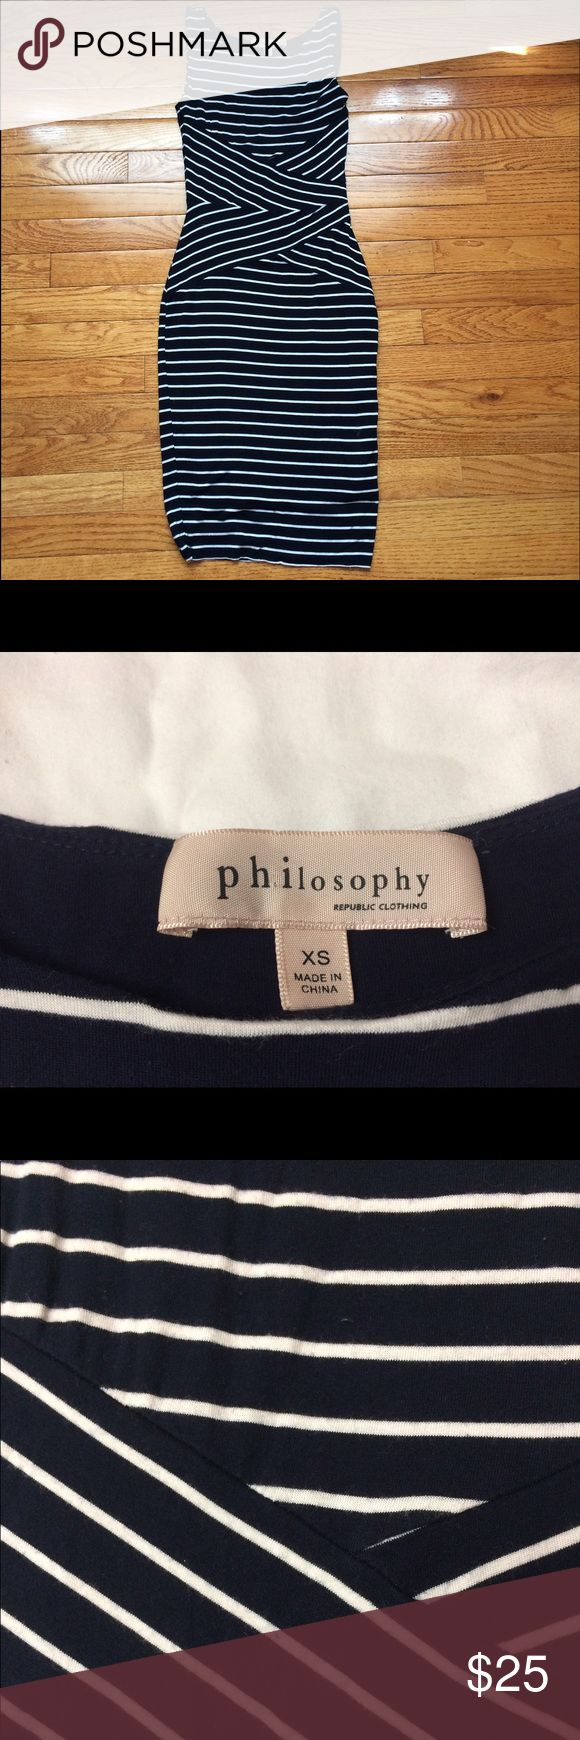 Philosophy Navy Blue/White Striped Dress Great dress to have in any wardrobe for work, for the weekend, or even for every day! Philosophy Dresses Midi